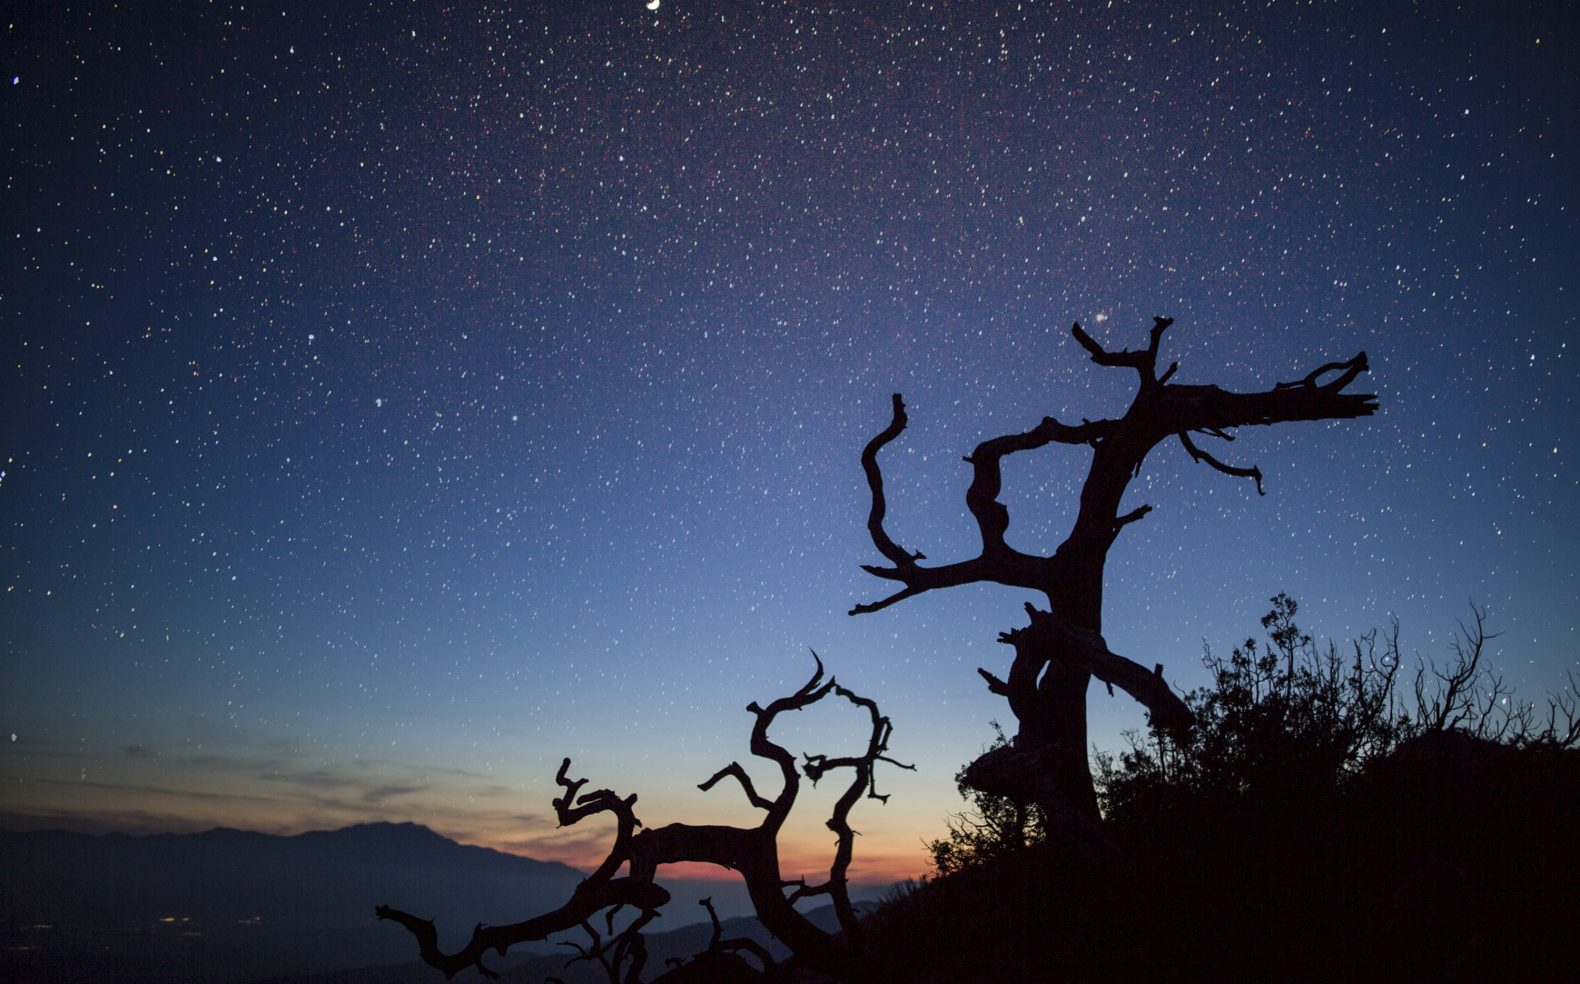 Stars in a navy blue sky above a sunset that are seen through barren tree limbs in a dessert.